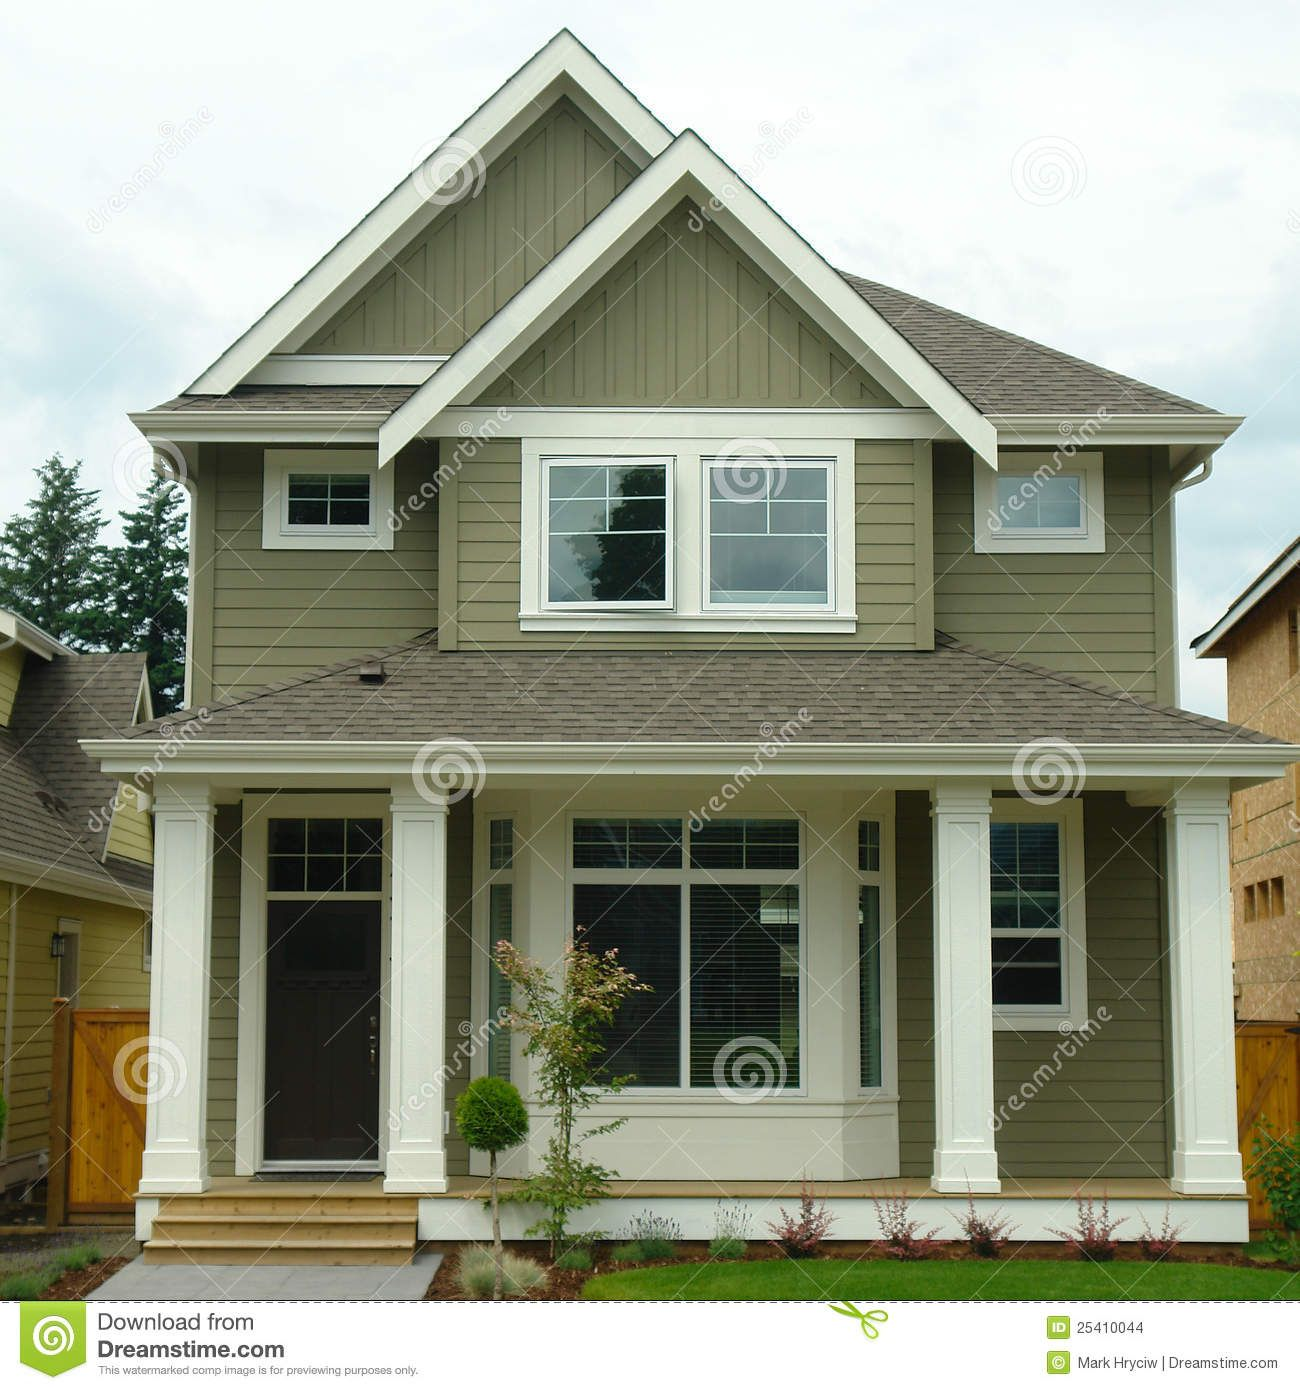 Forest green exterior house color new home house exterior 25410044